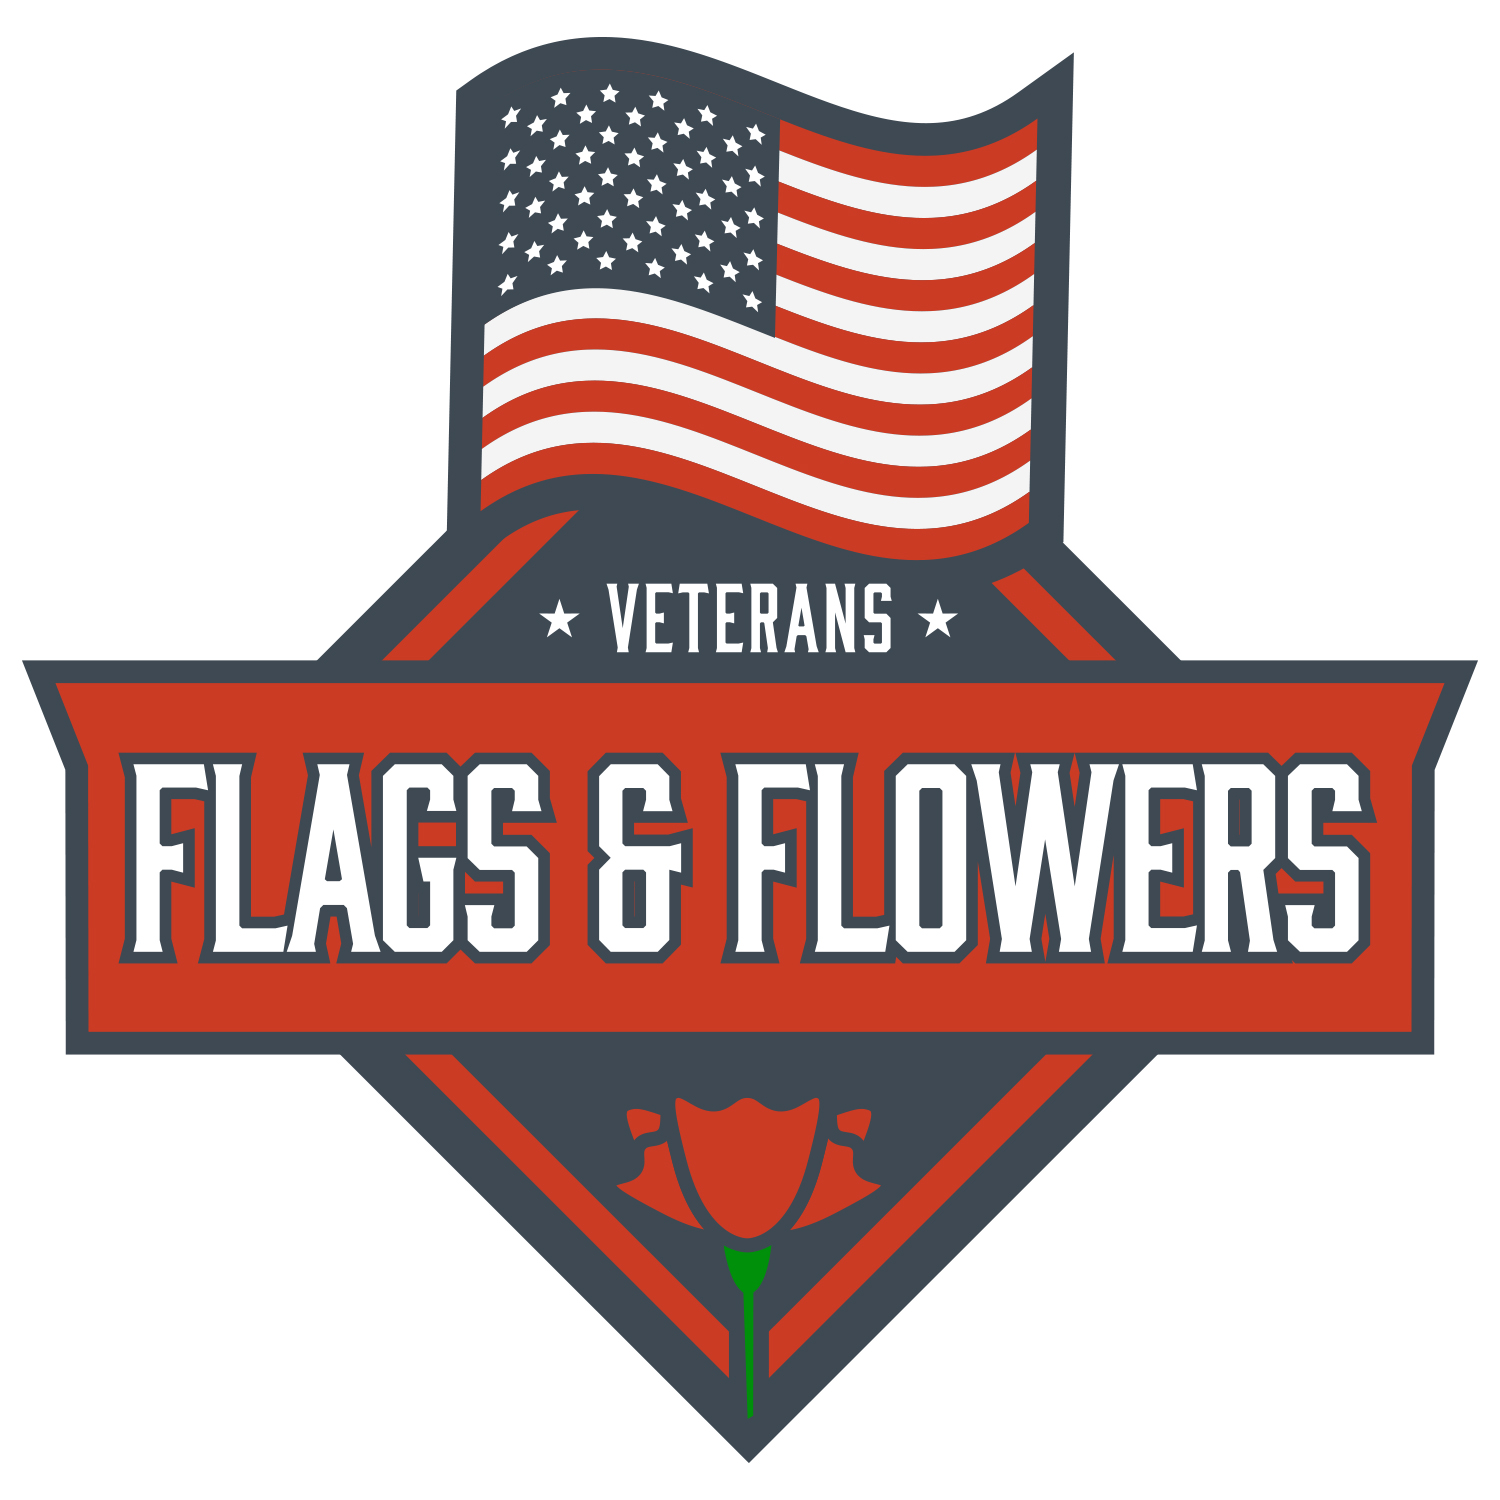 Veterans Flags & Flowers